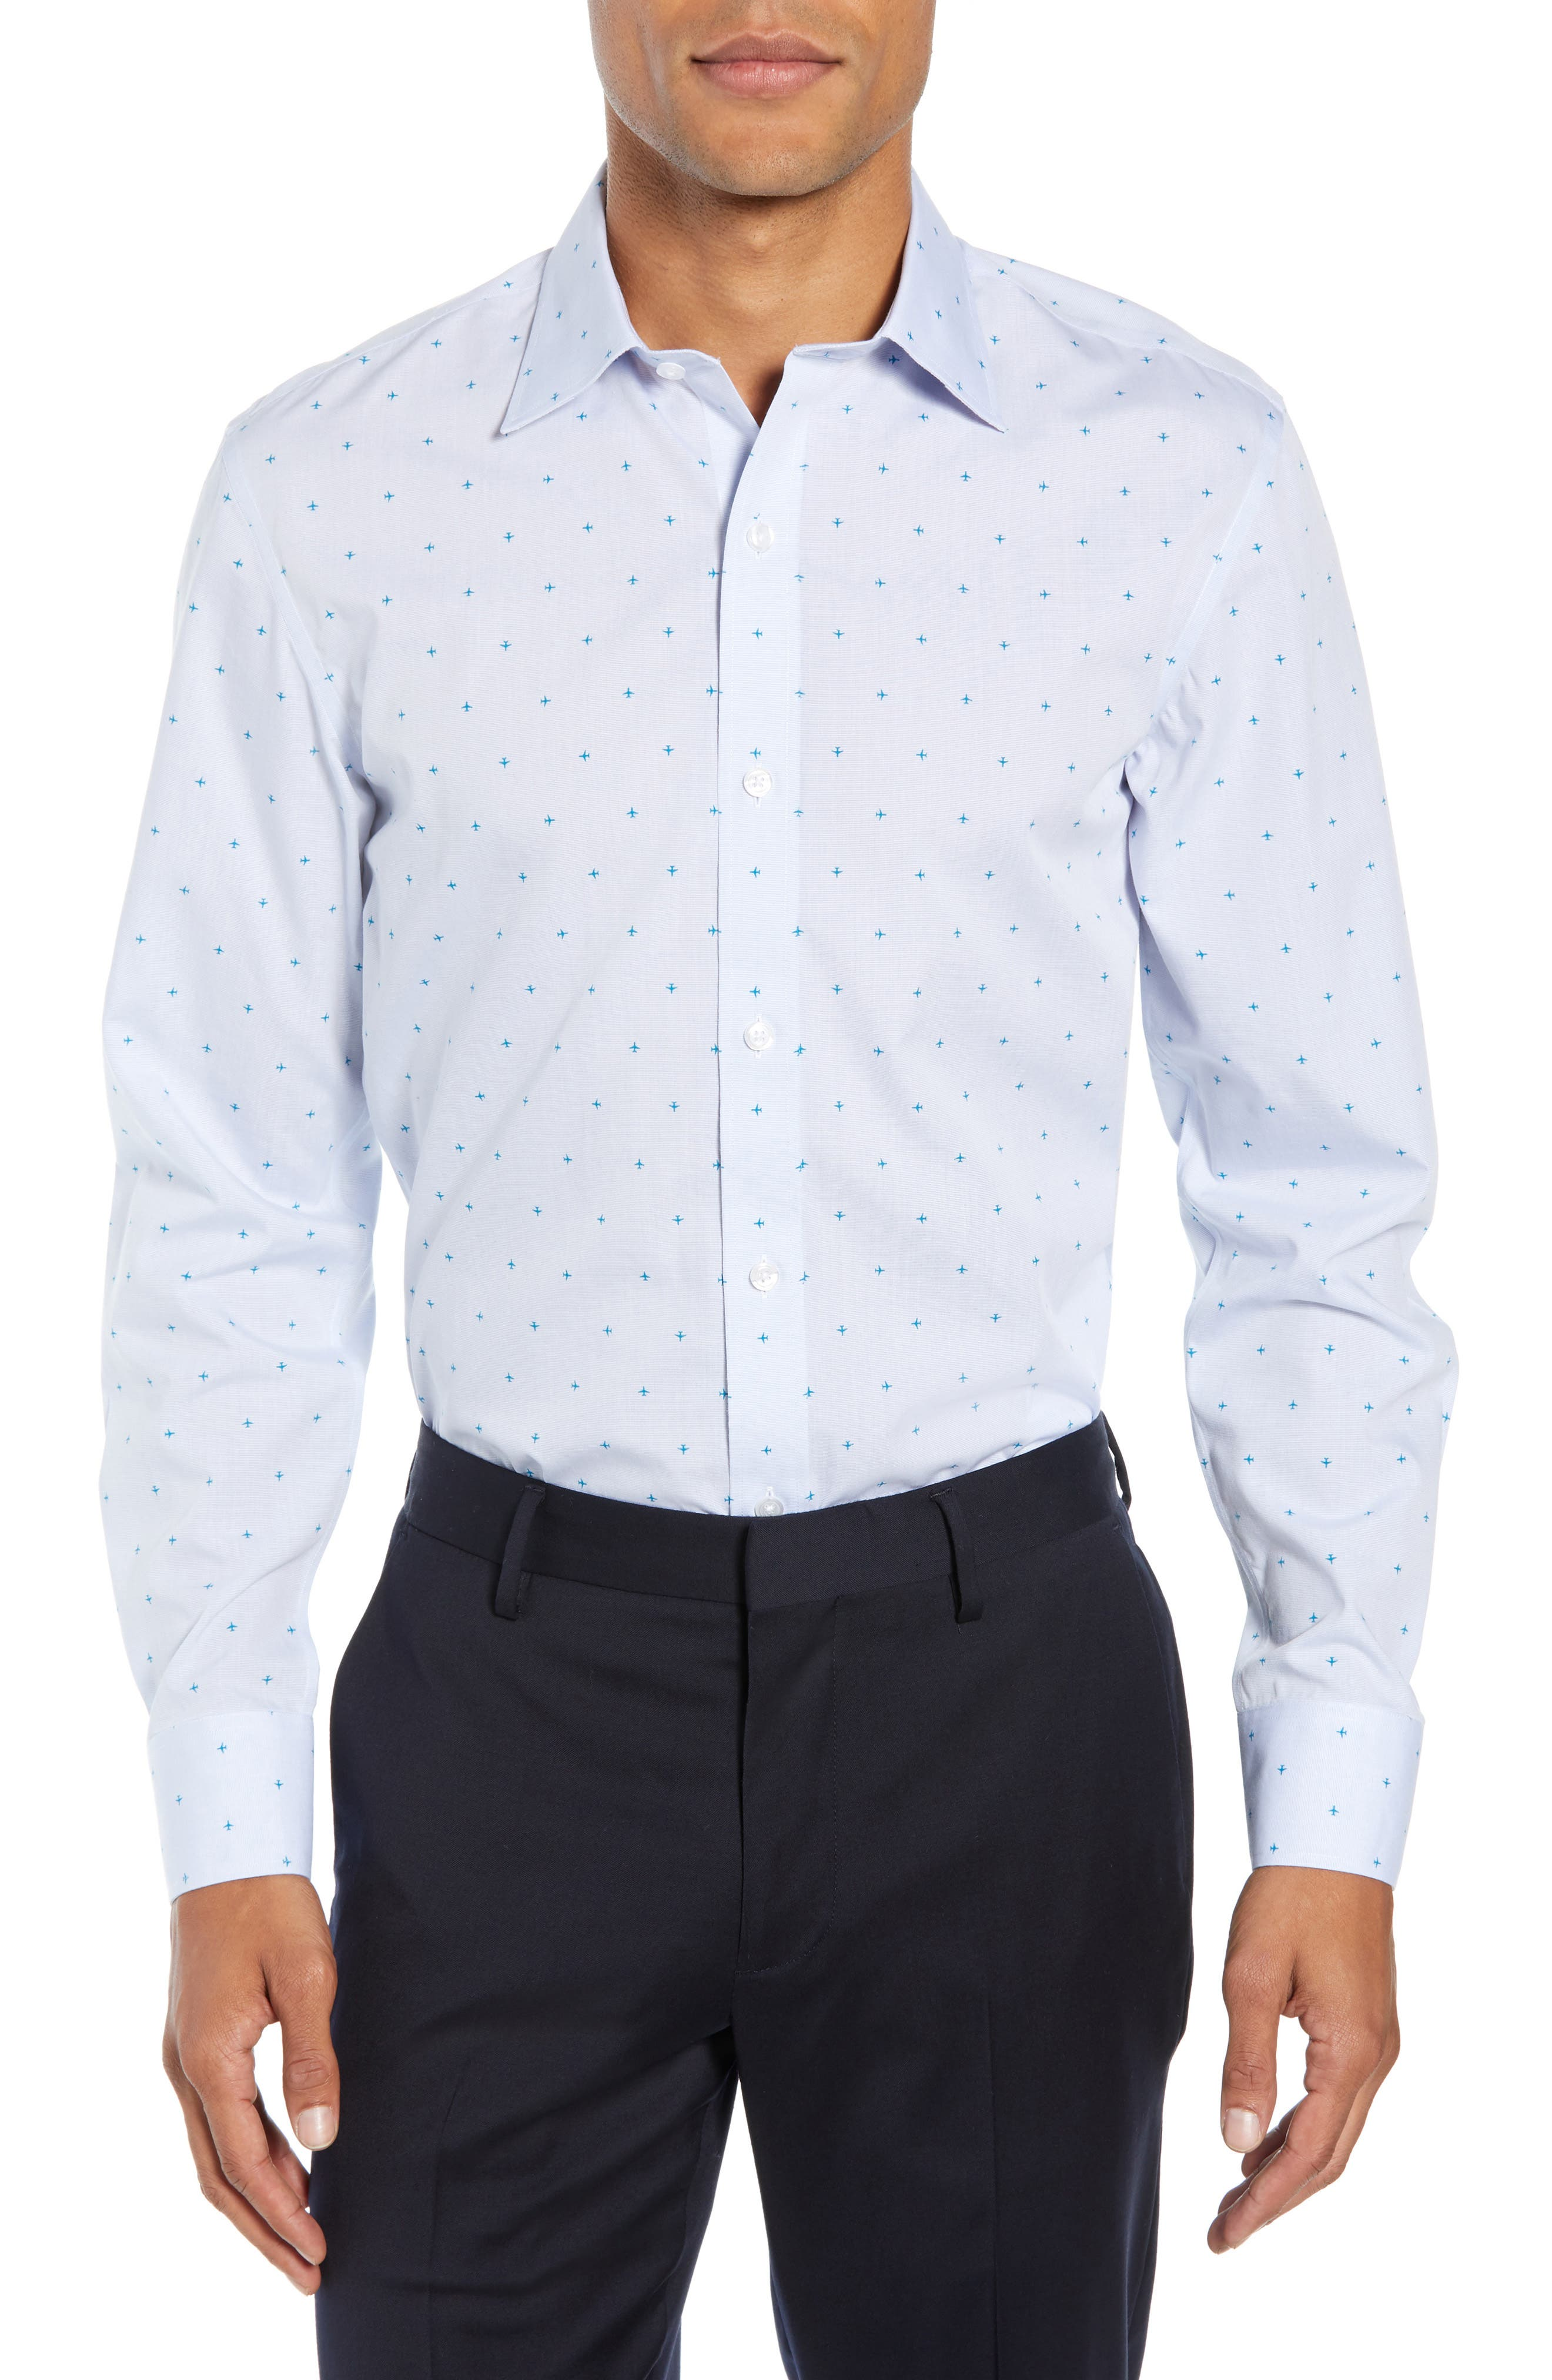 Bonobos Daily Grind Slim Fit Print Dress Shirt - Blue